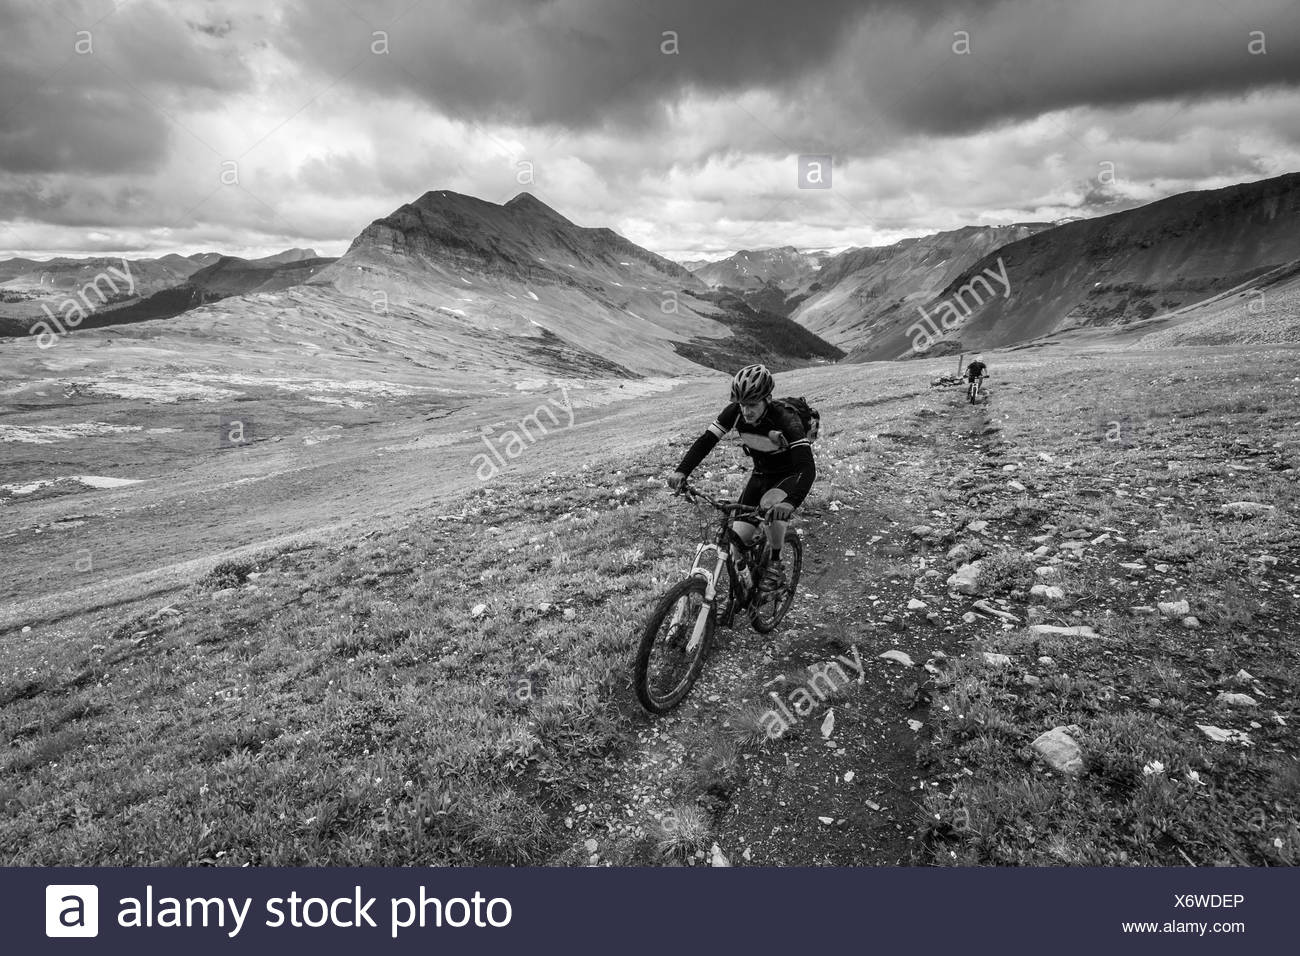 Two men riding on a trail in the mountains. Black and white. - Stock Image